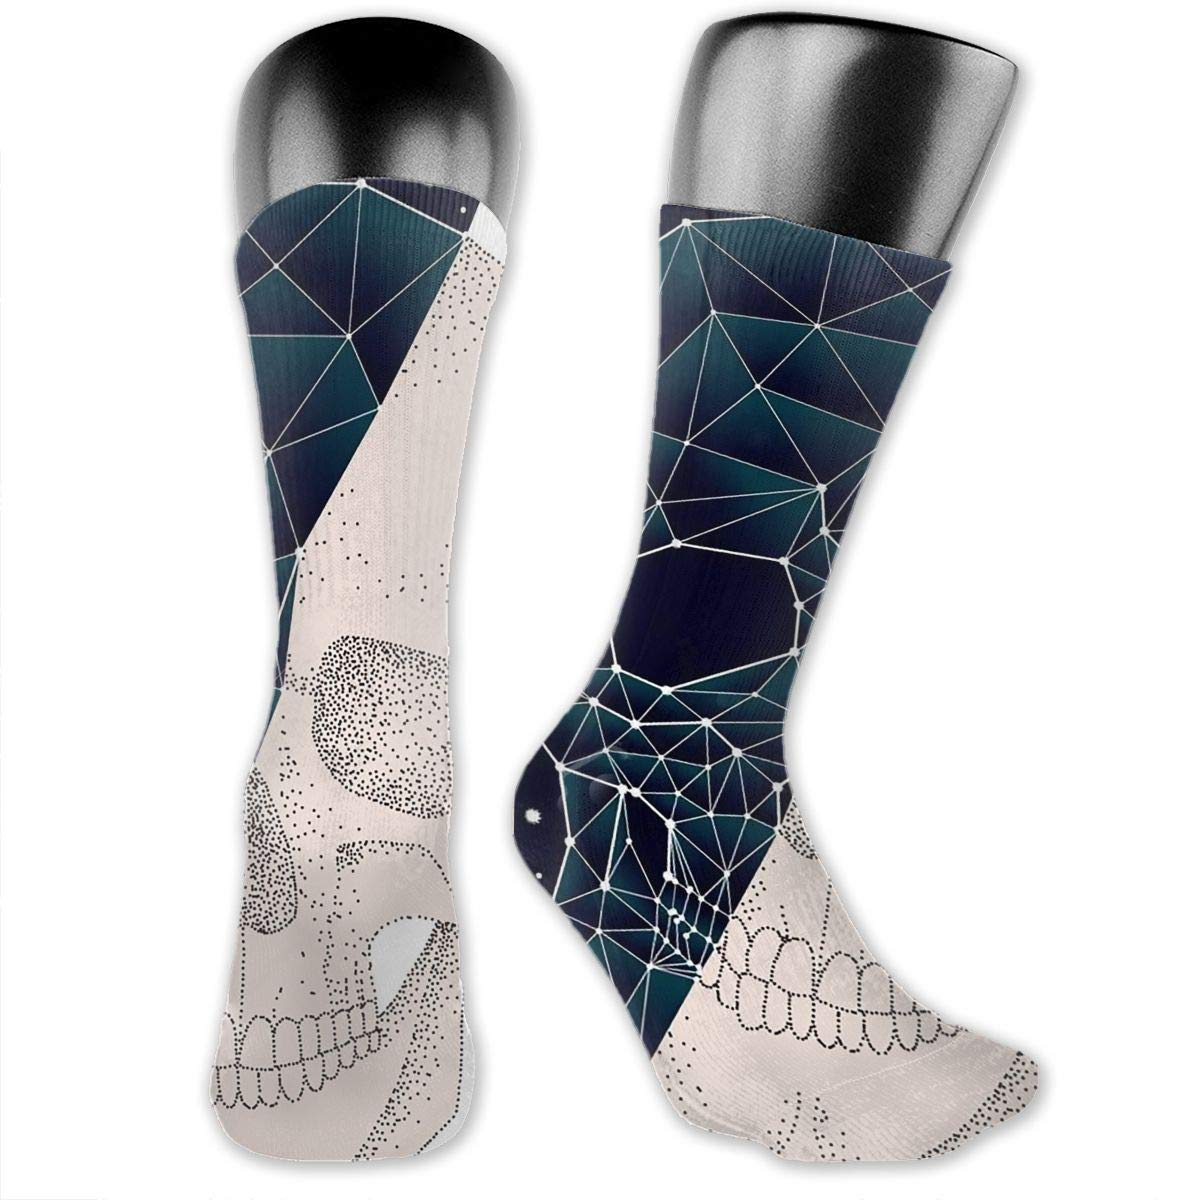 Geometry Constellation Skull Day And Night Mens Dress Socks Fun Mid-Calf Socks 15.7